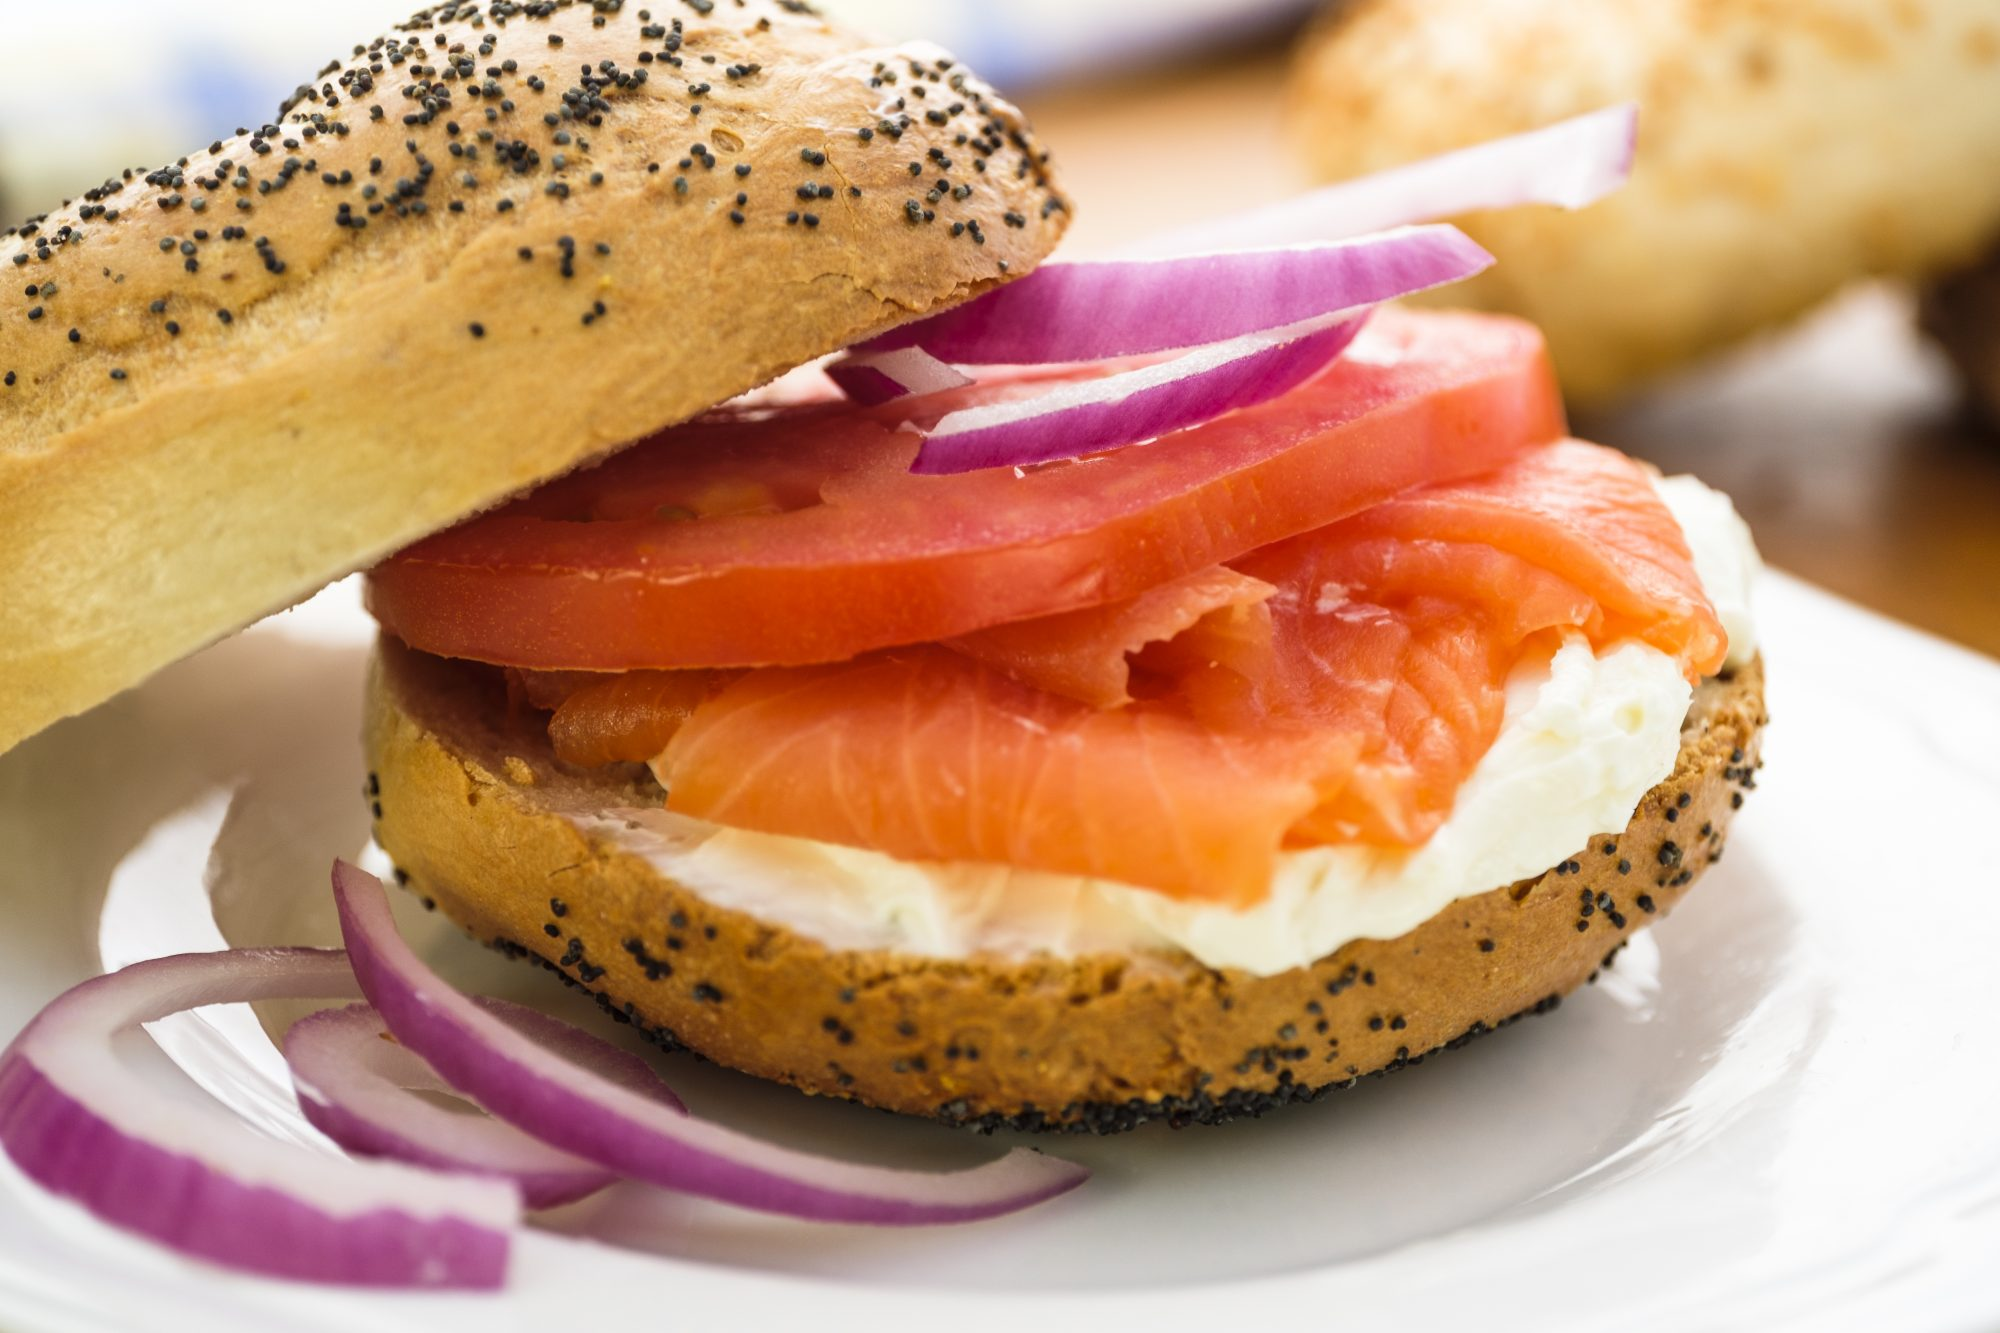 Bagel and Lox Getty 3/24/20